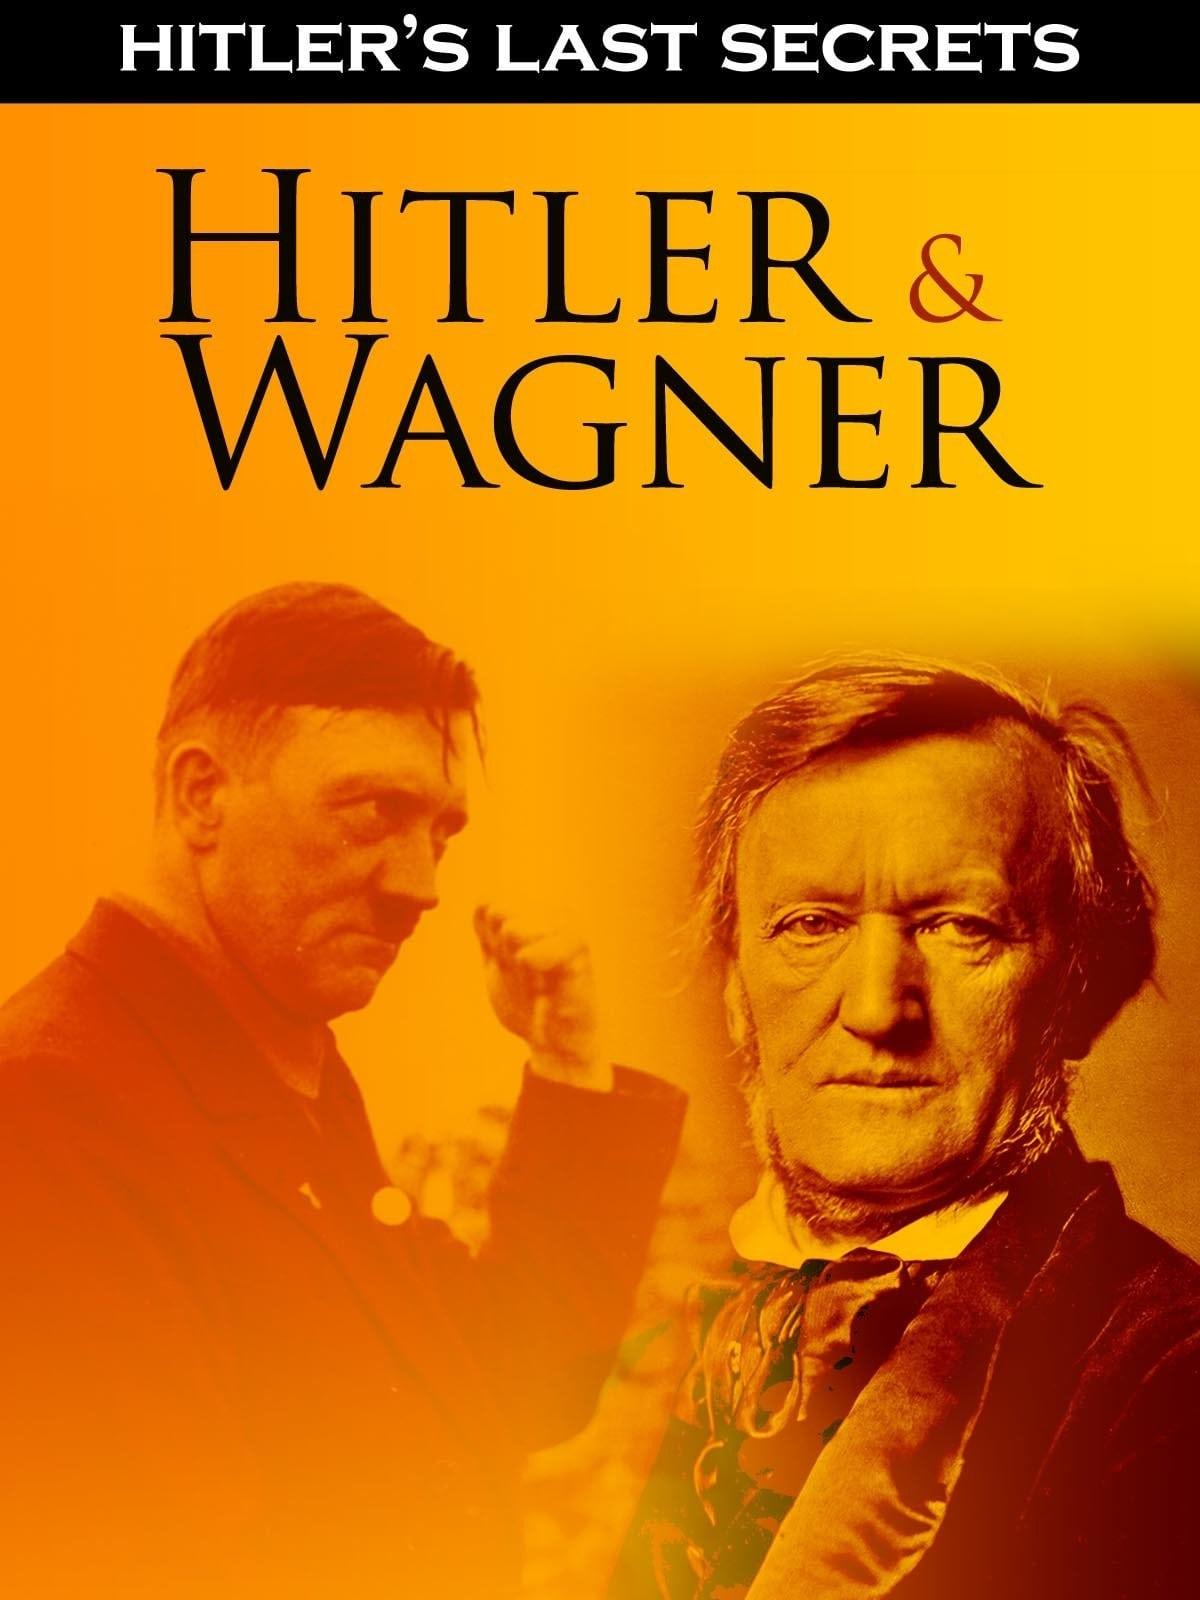 Hitler's Last Secrets: Hitler and Wagner on FREECABLE TV